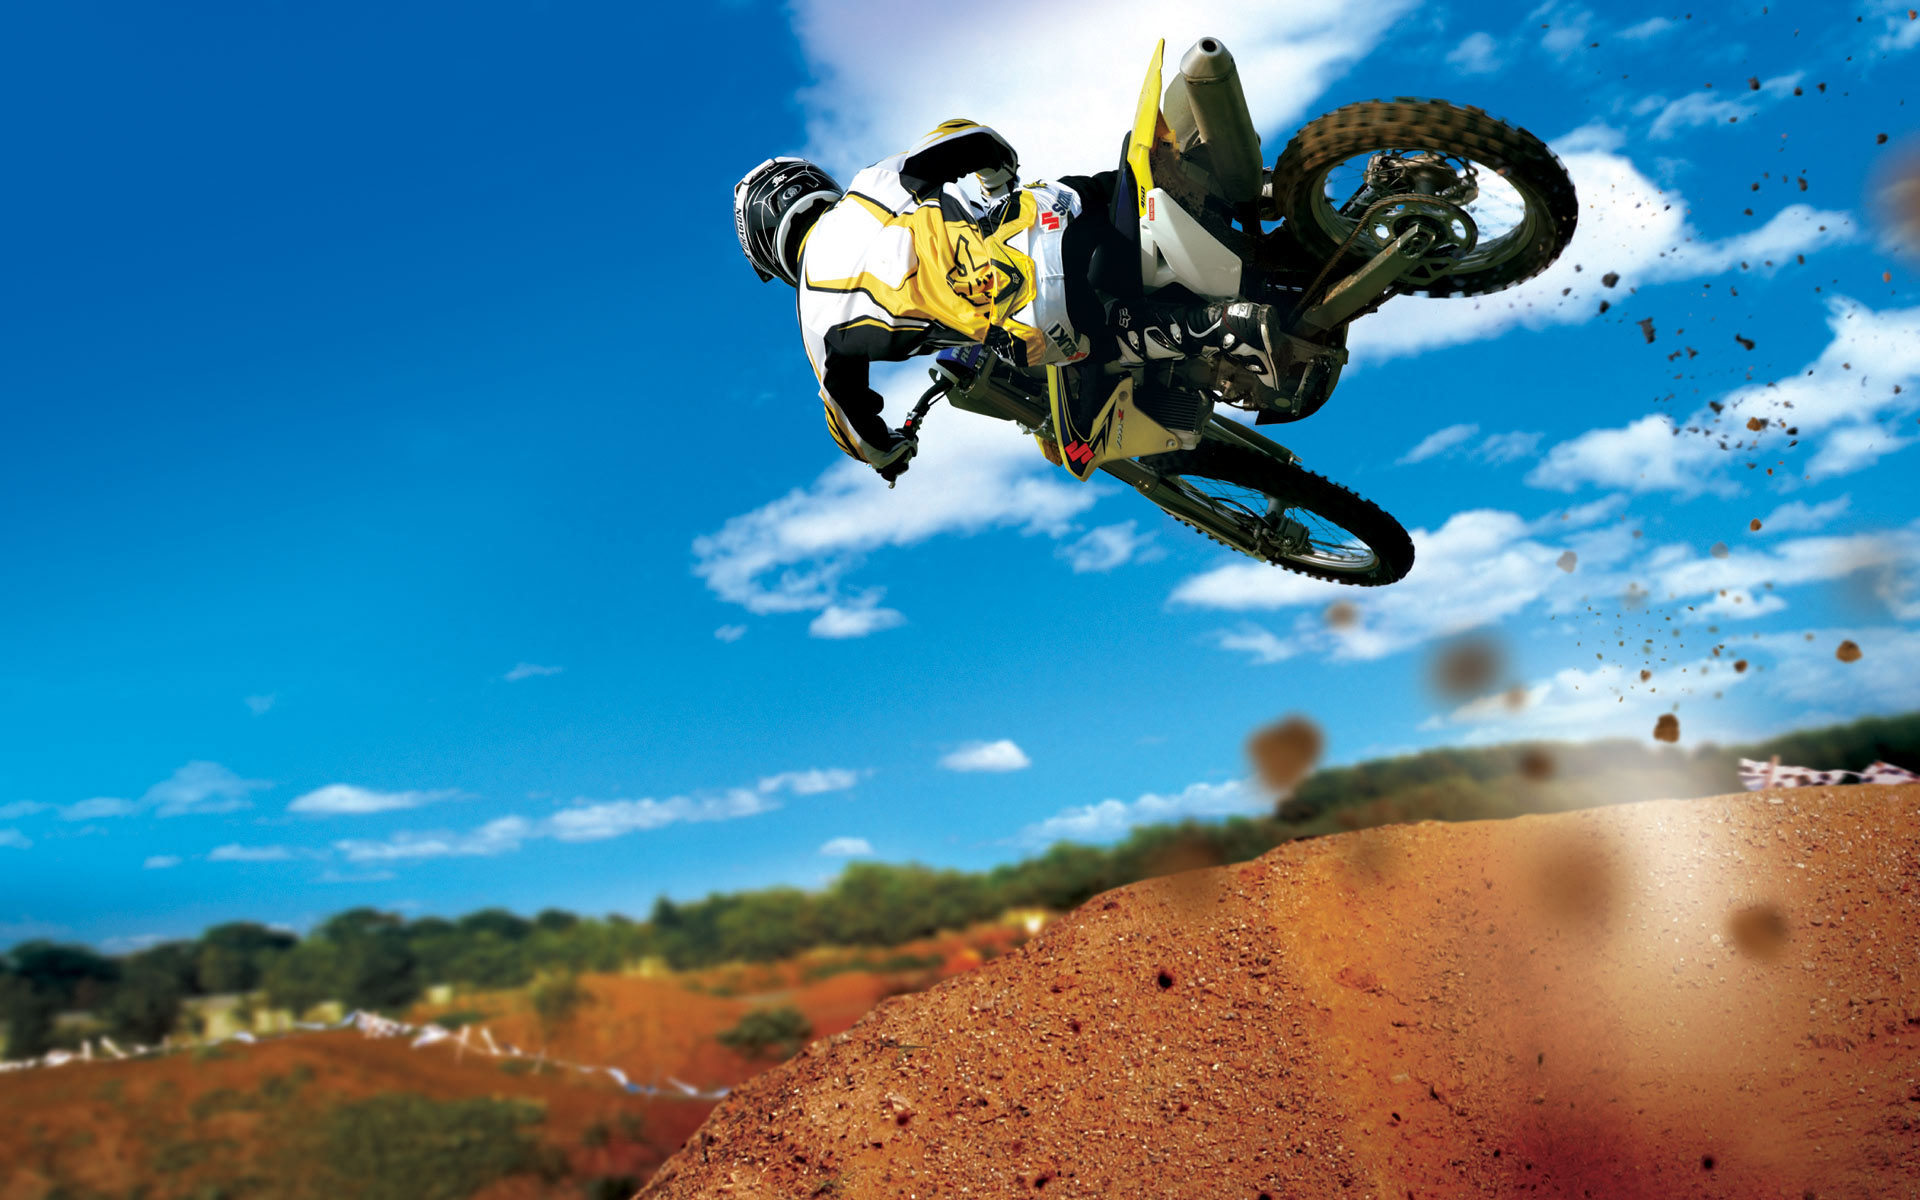 motocross hd wallpapersjpg 1920x1200